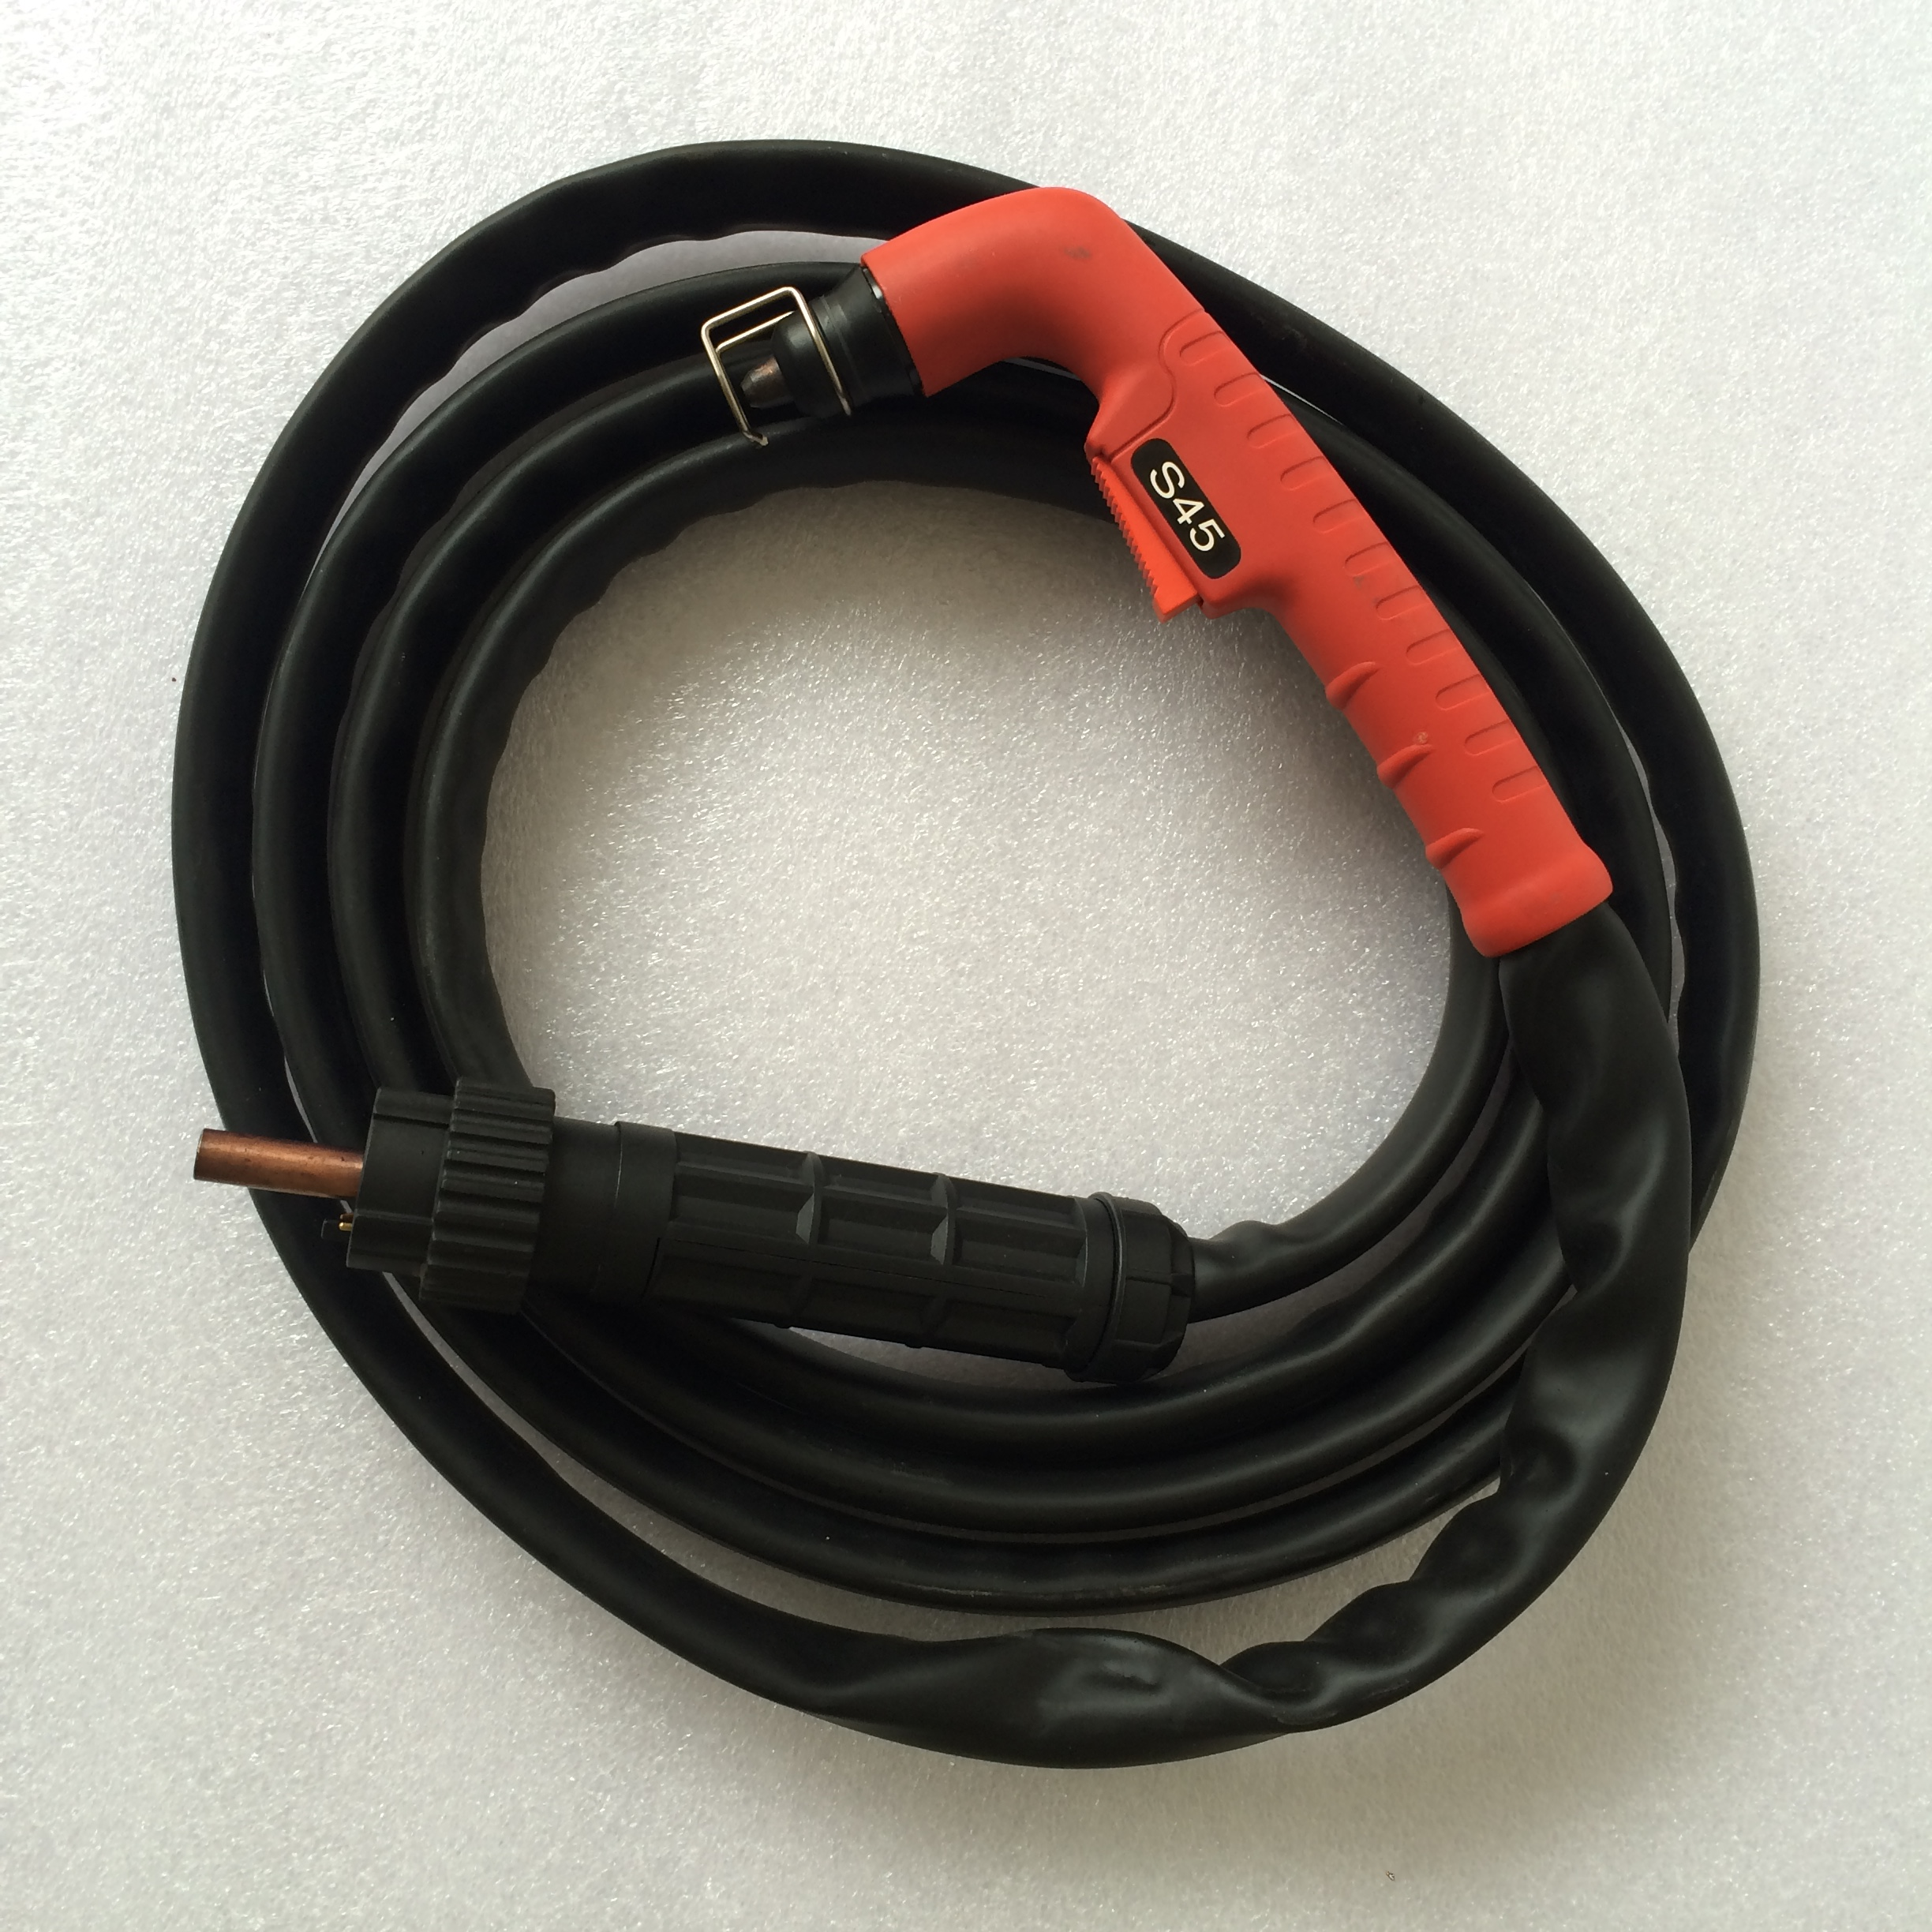 Trafimet Ergocut S45 Plasma Cutter Consumables Torch Complete 4M Cable Pilot Arc with Euro Central Connector